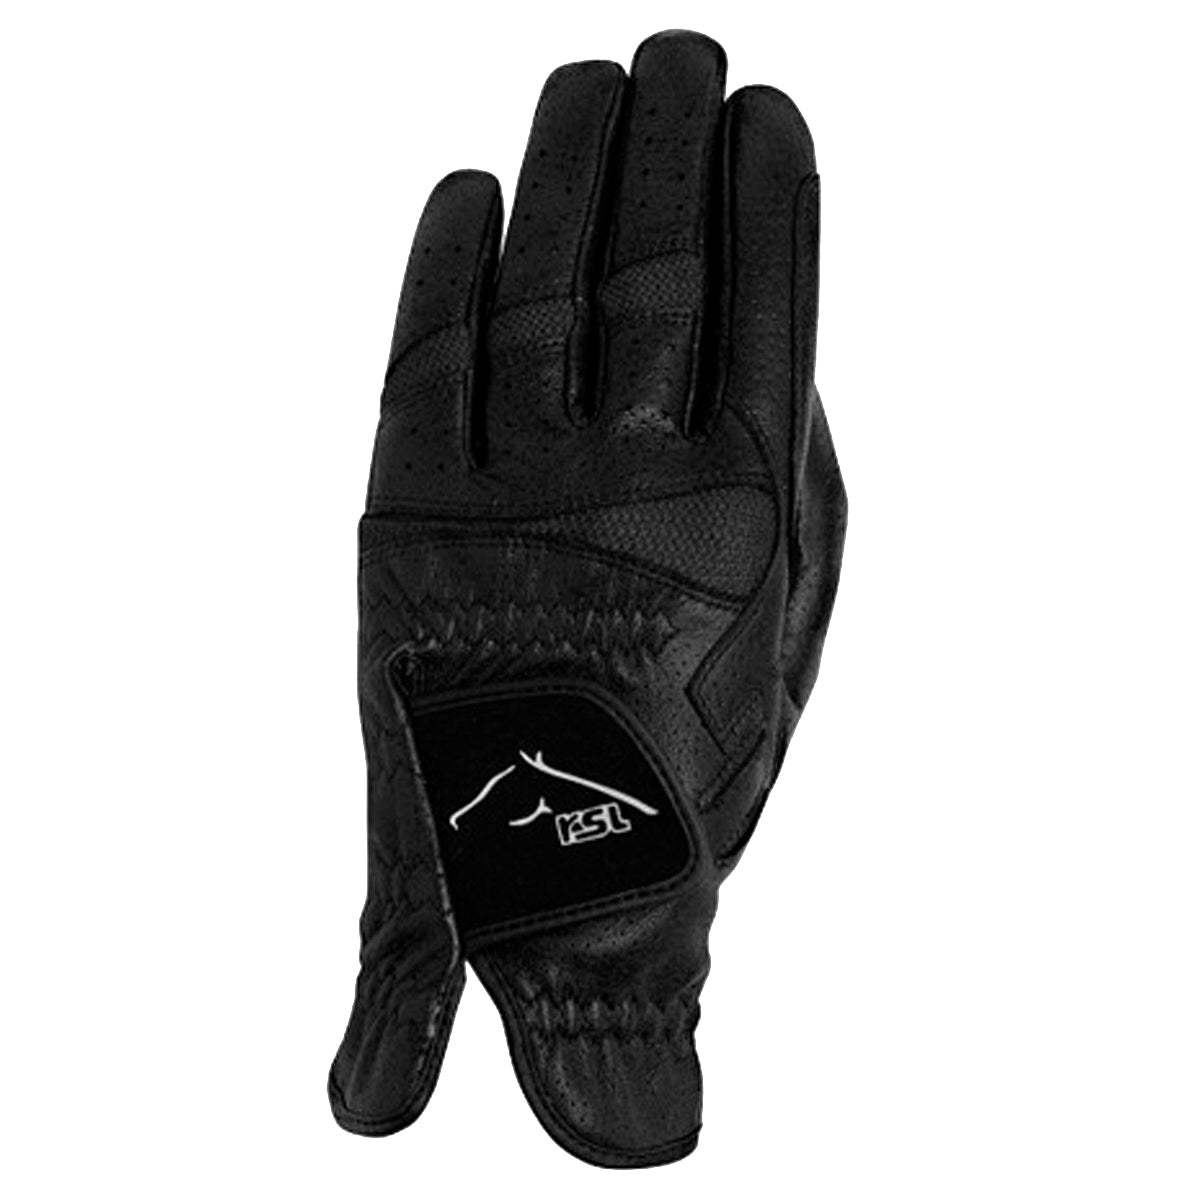 KL Select Ascot Coolmax Riding Gloves